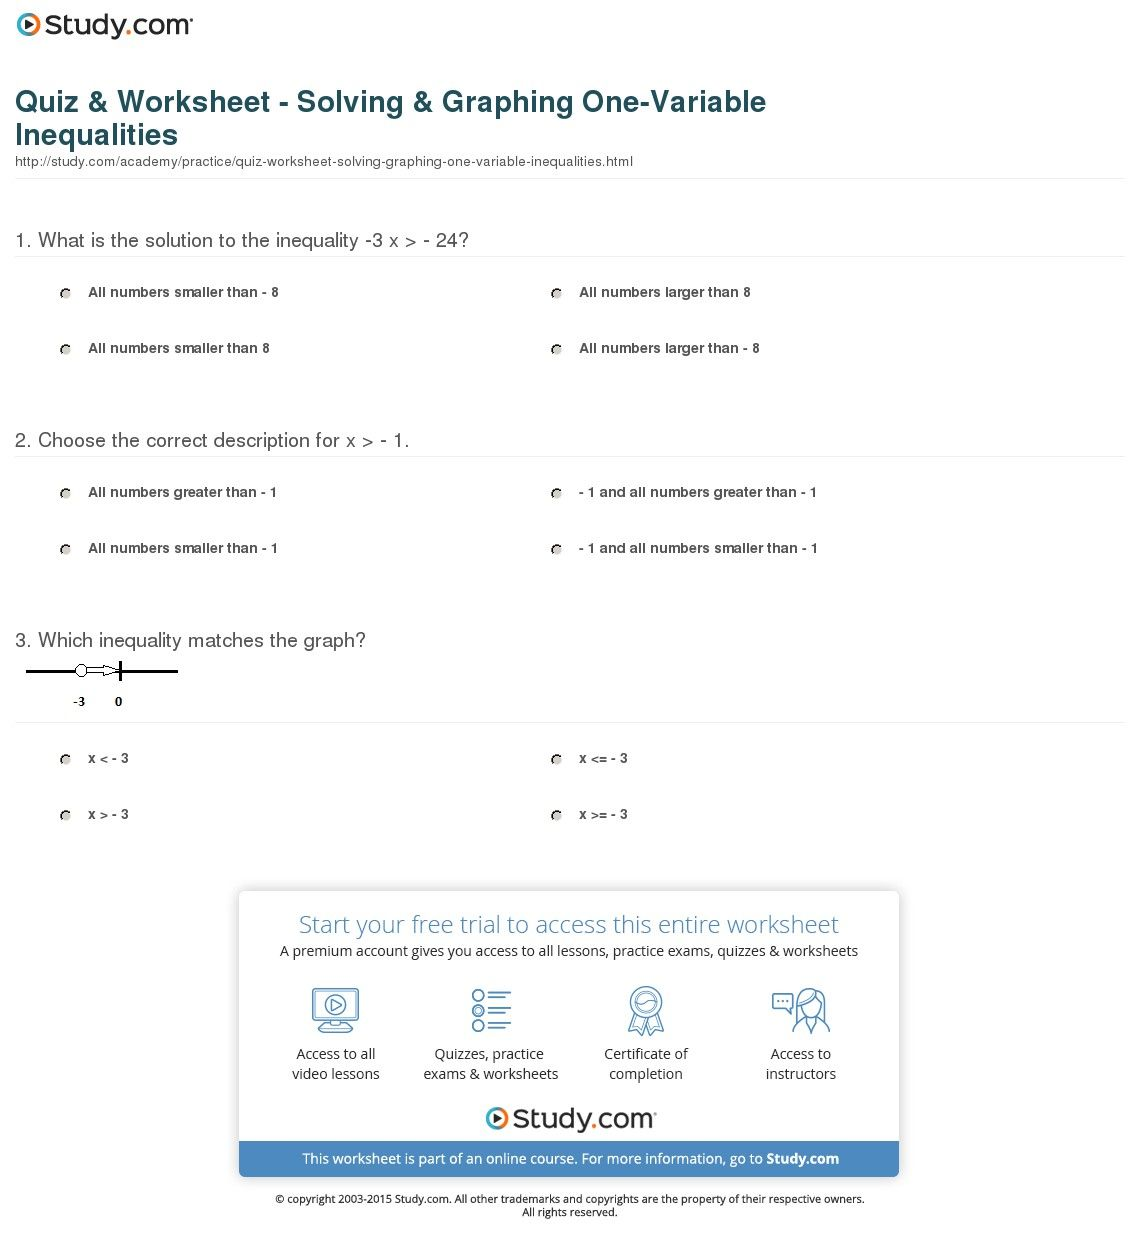 worksheet Solving And Graphing Inequalities Worksheet Pdf 17 best images about school stuff on pinterest platonic solid equation and roof trusses